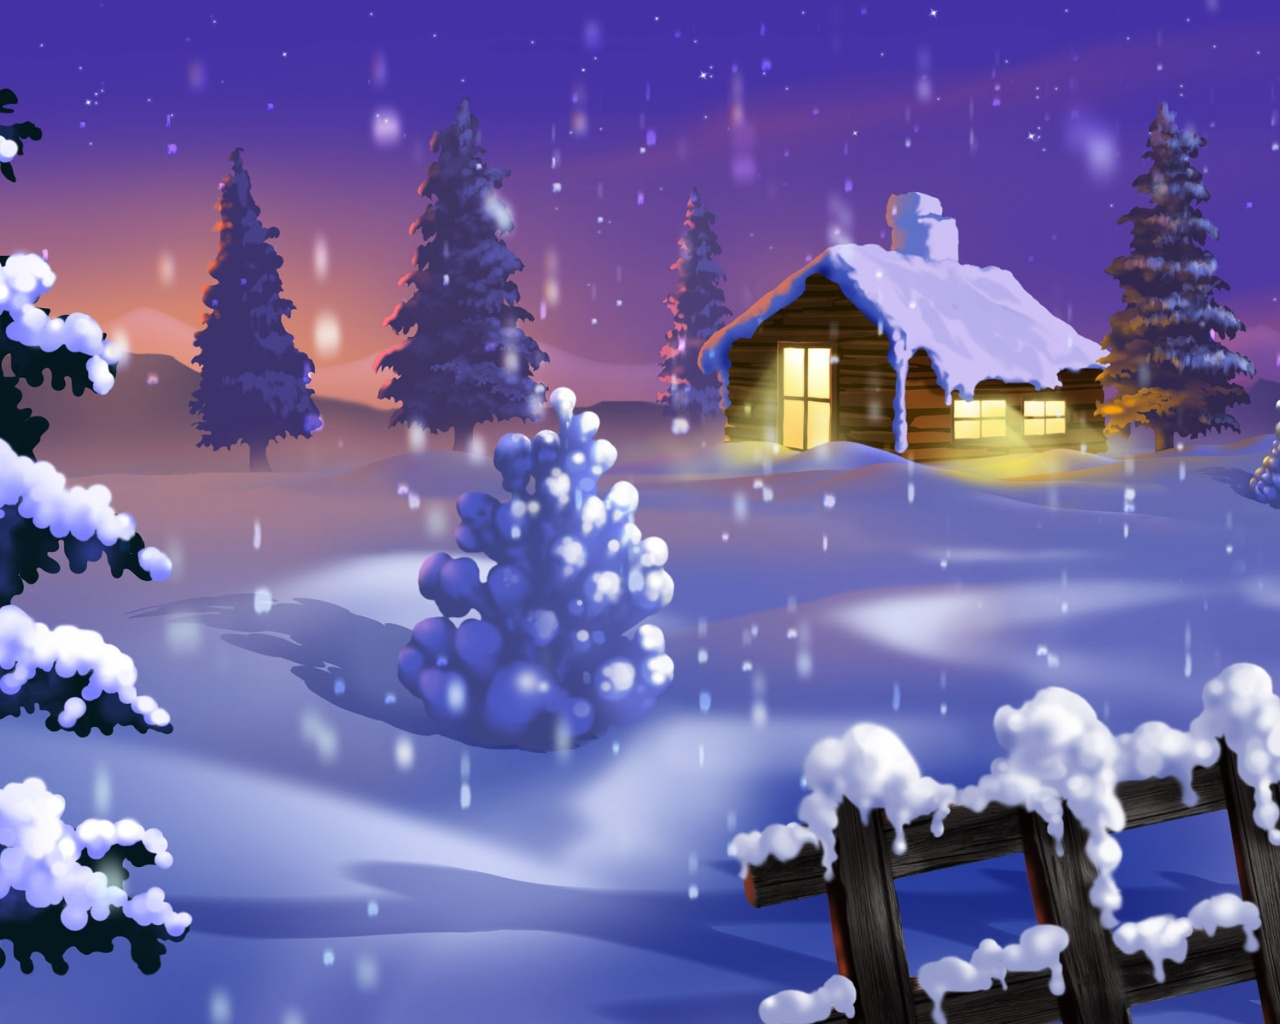 Winter Wallpaper 1280 X 1024